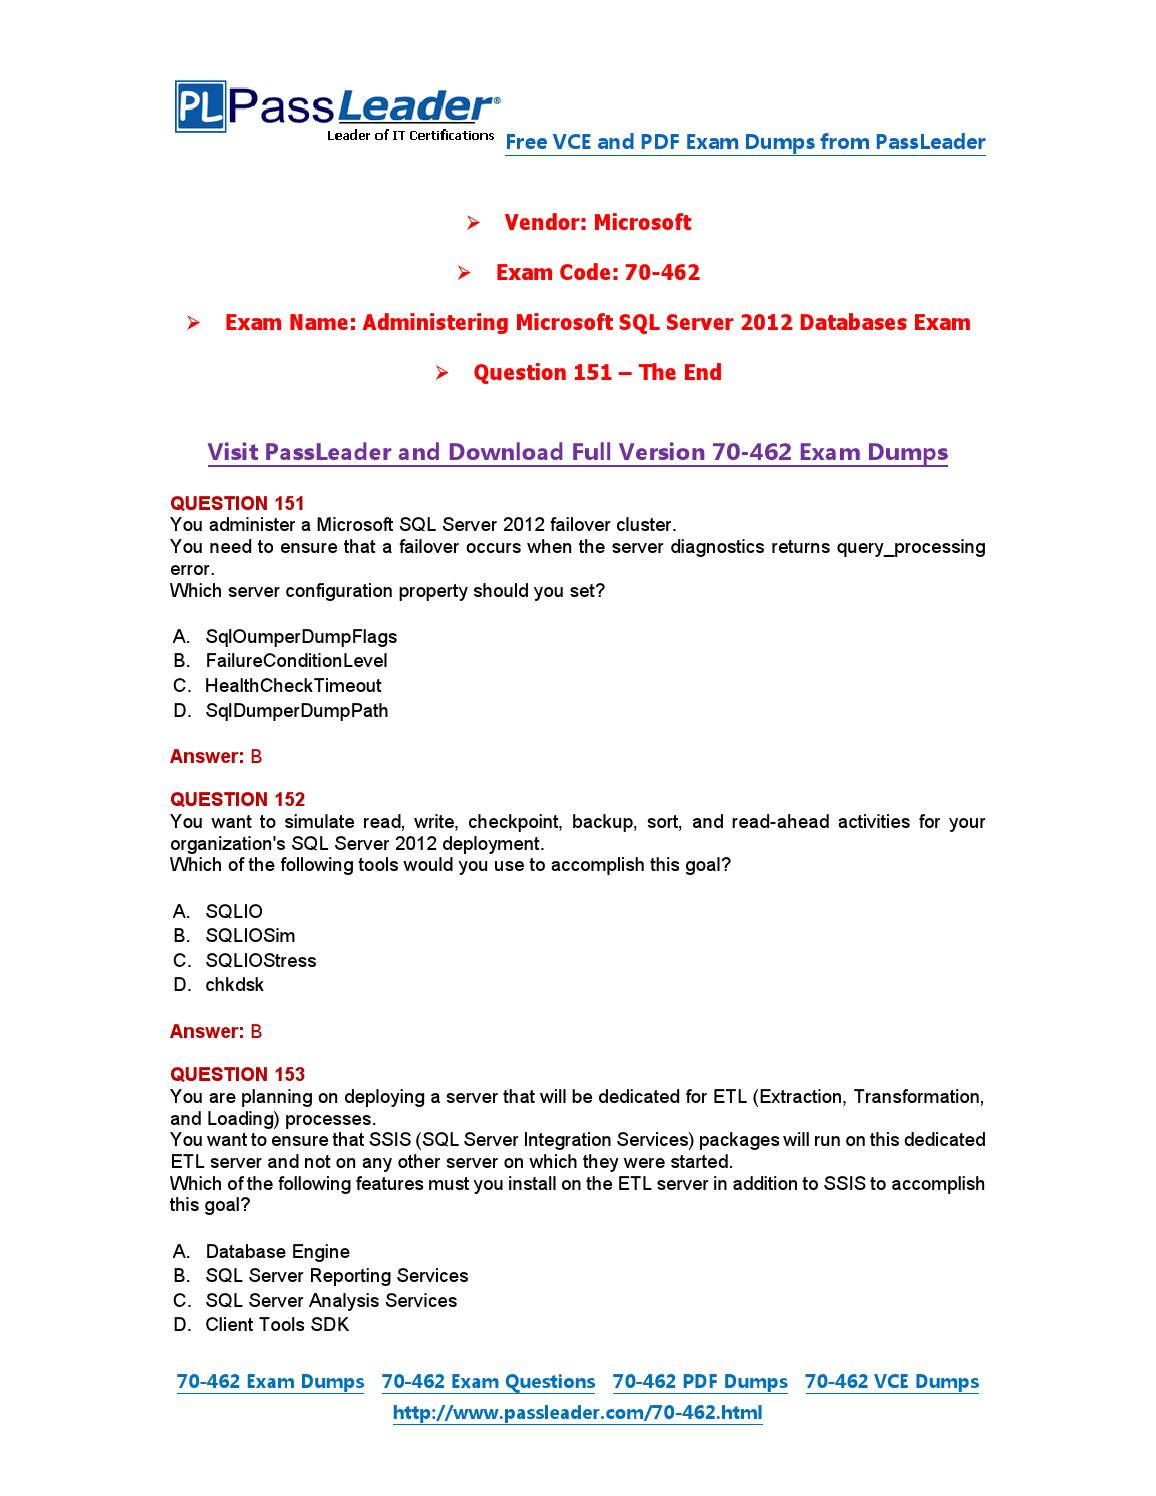 70 462 Exam Dumps With Pdf And Vce Download 151 End By Passleader